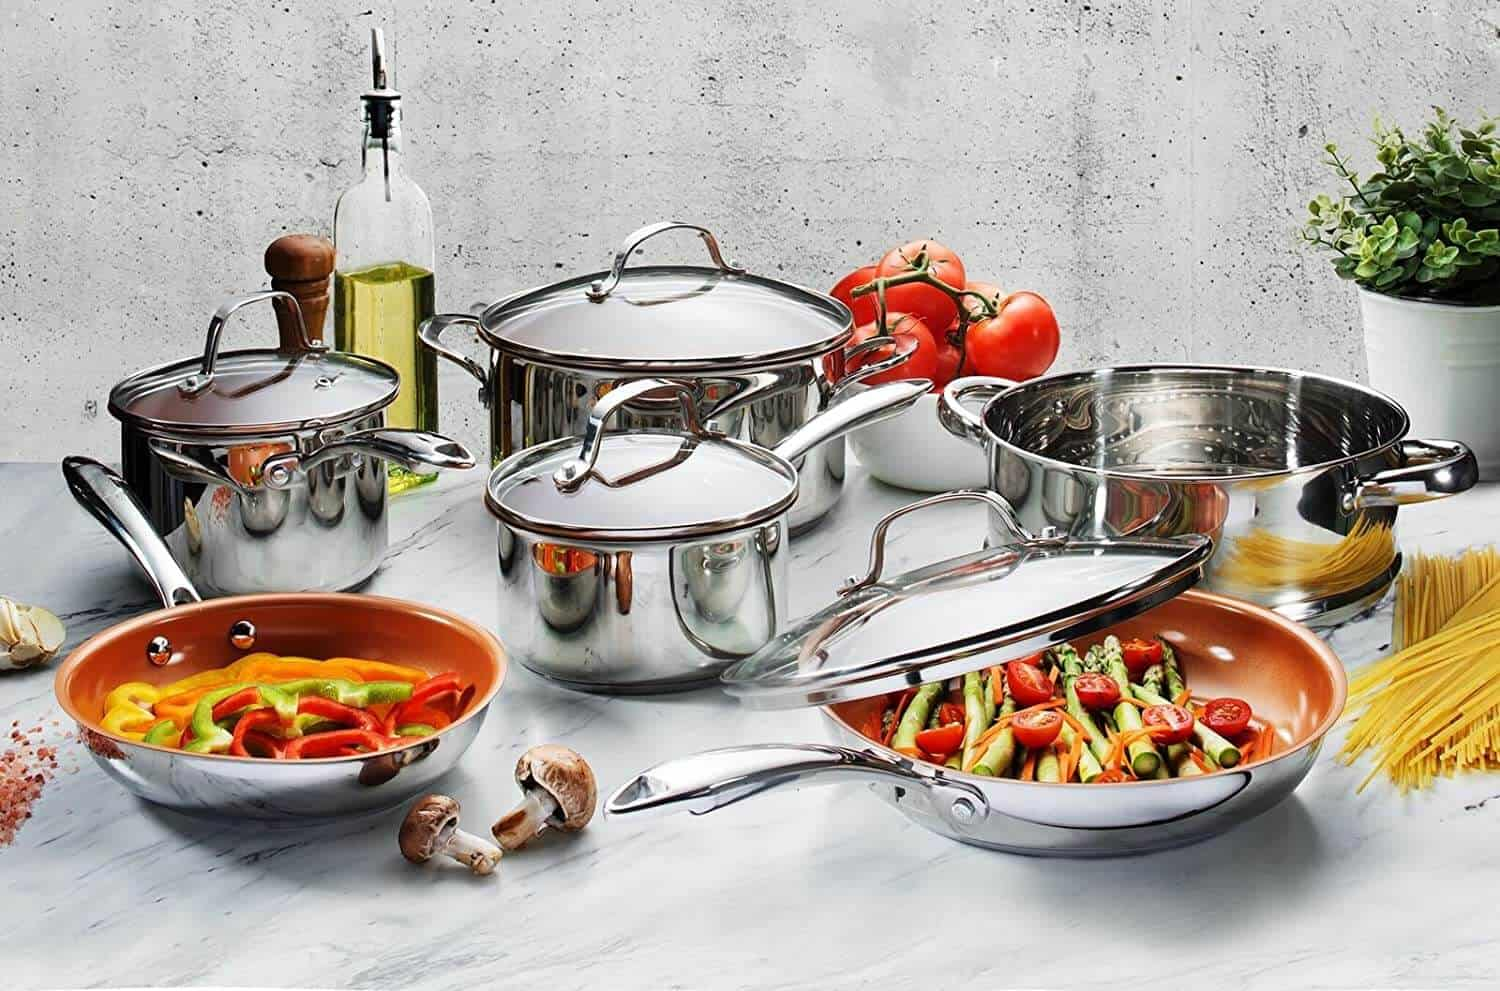 Best stainless steel nonstick cookware